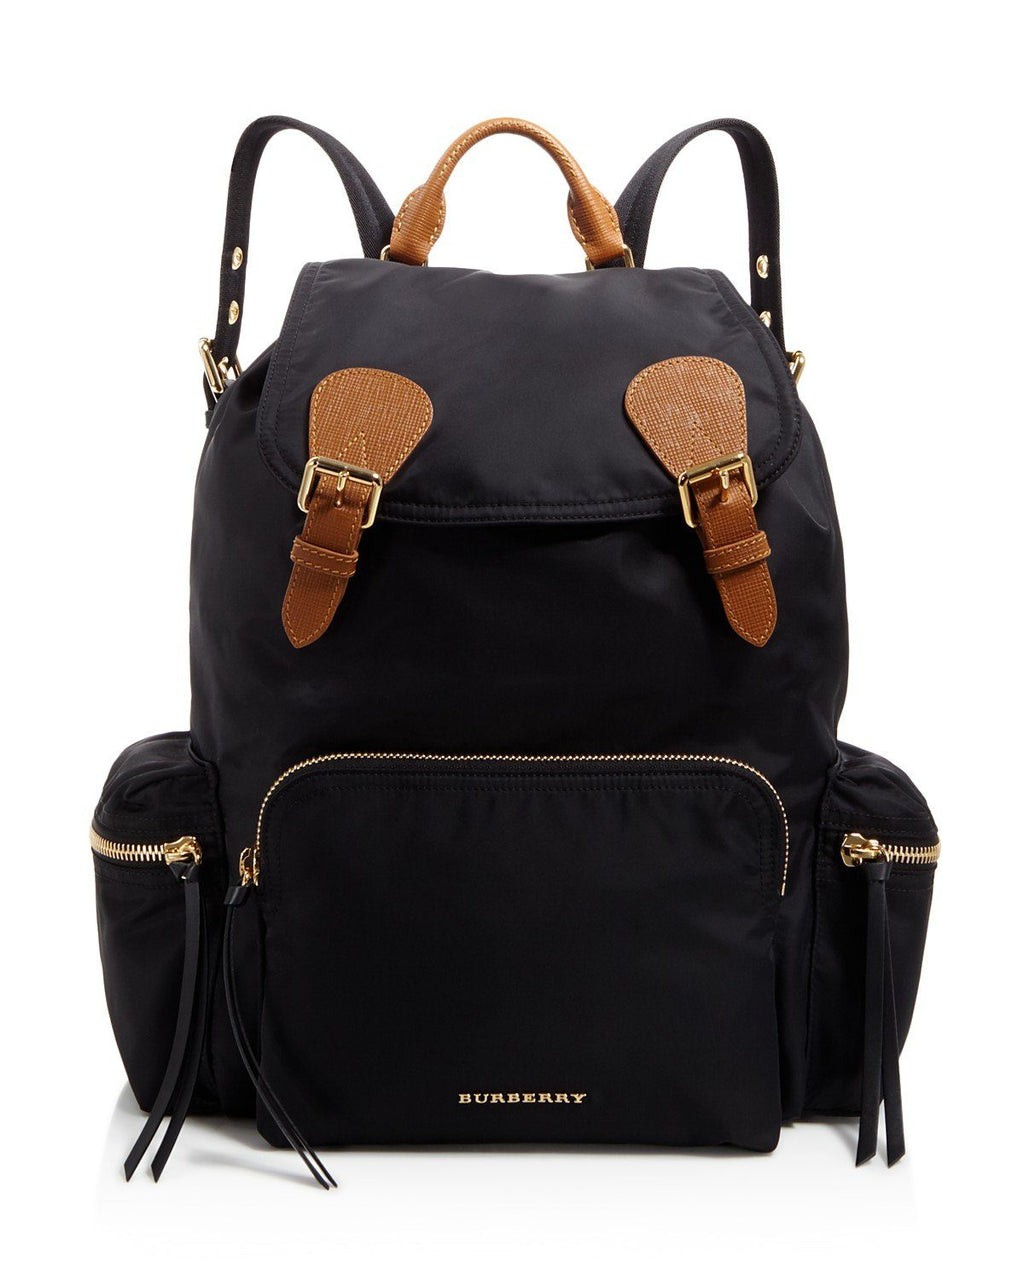 Burberry Medium Rucksack Runway Nylon Backpack, Black